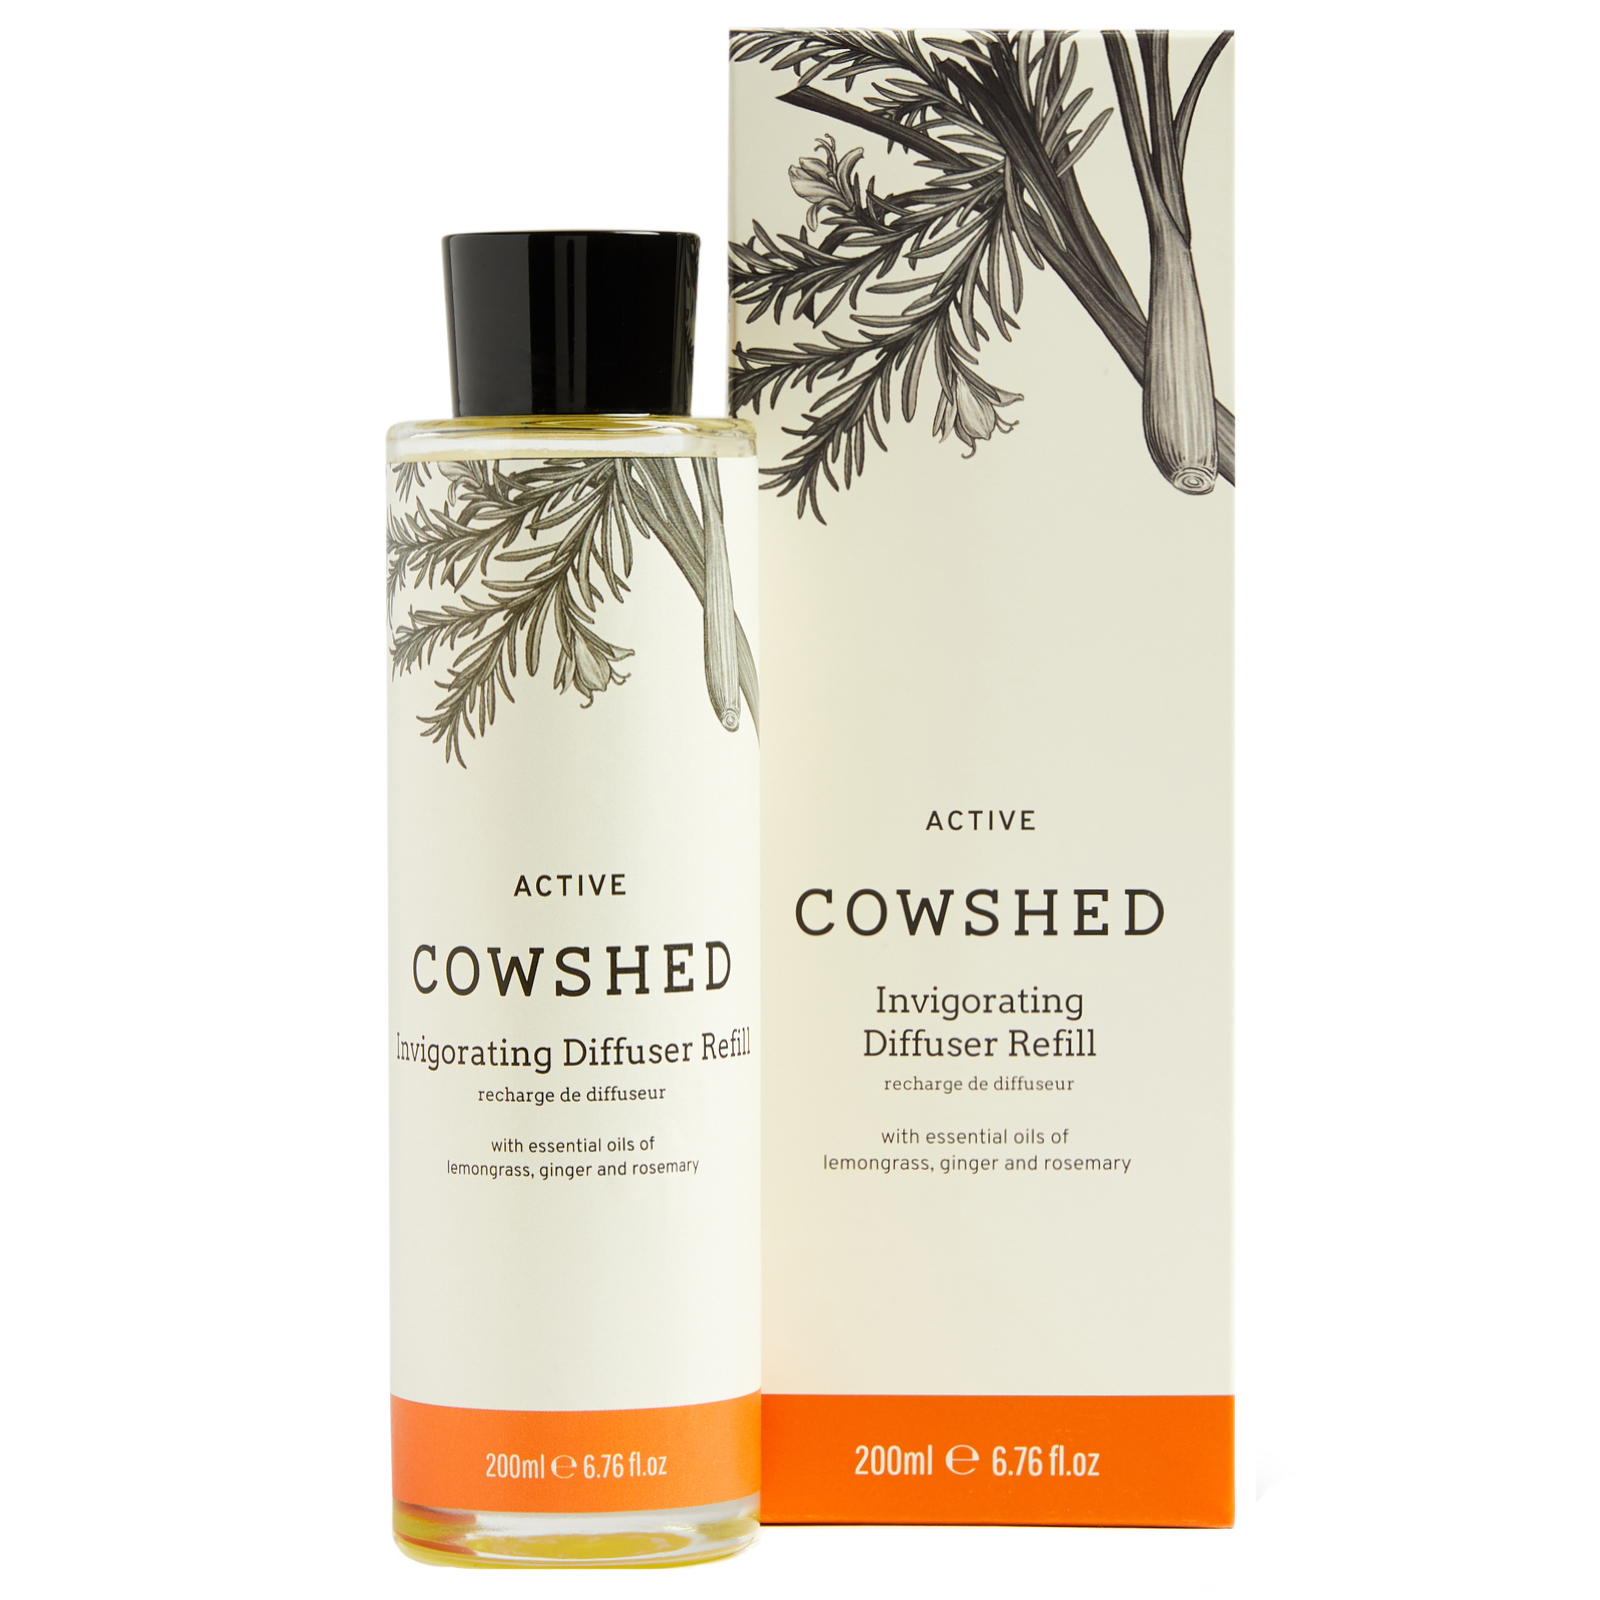 Cowshed At Home Active Diffuser Refill 200ml